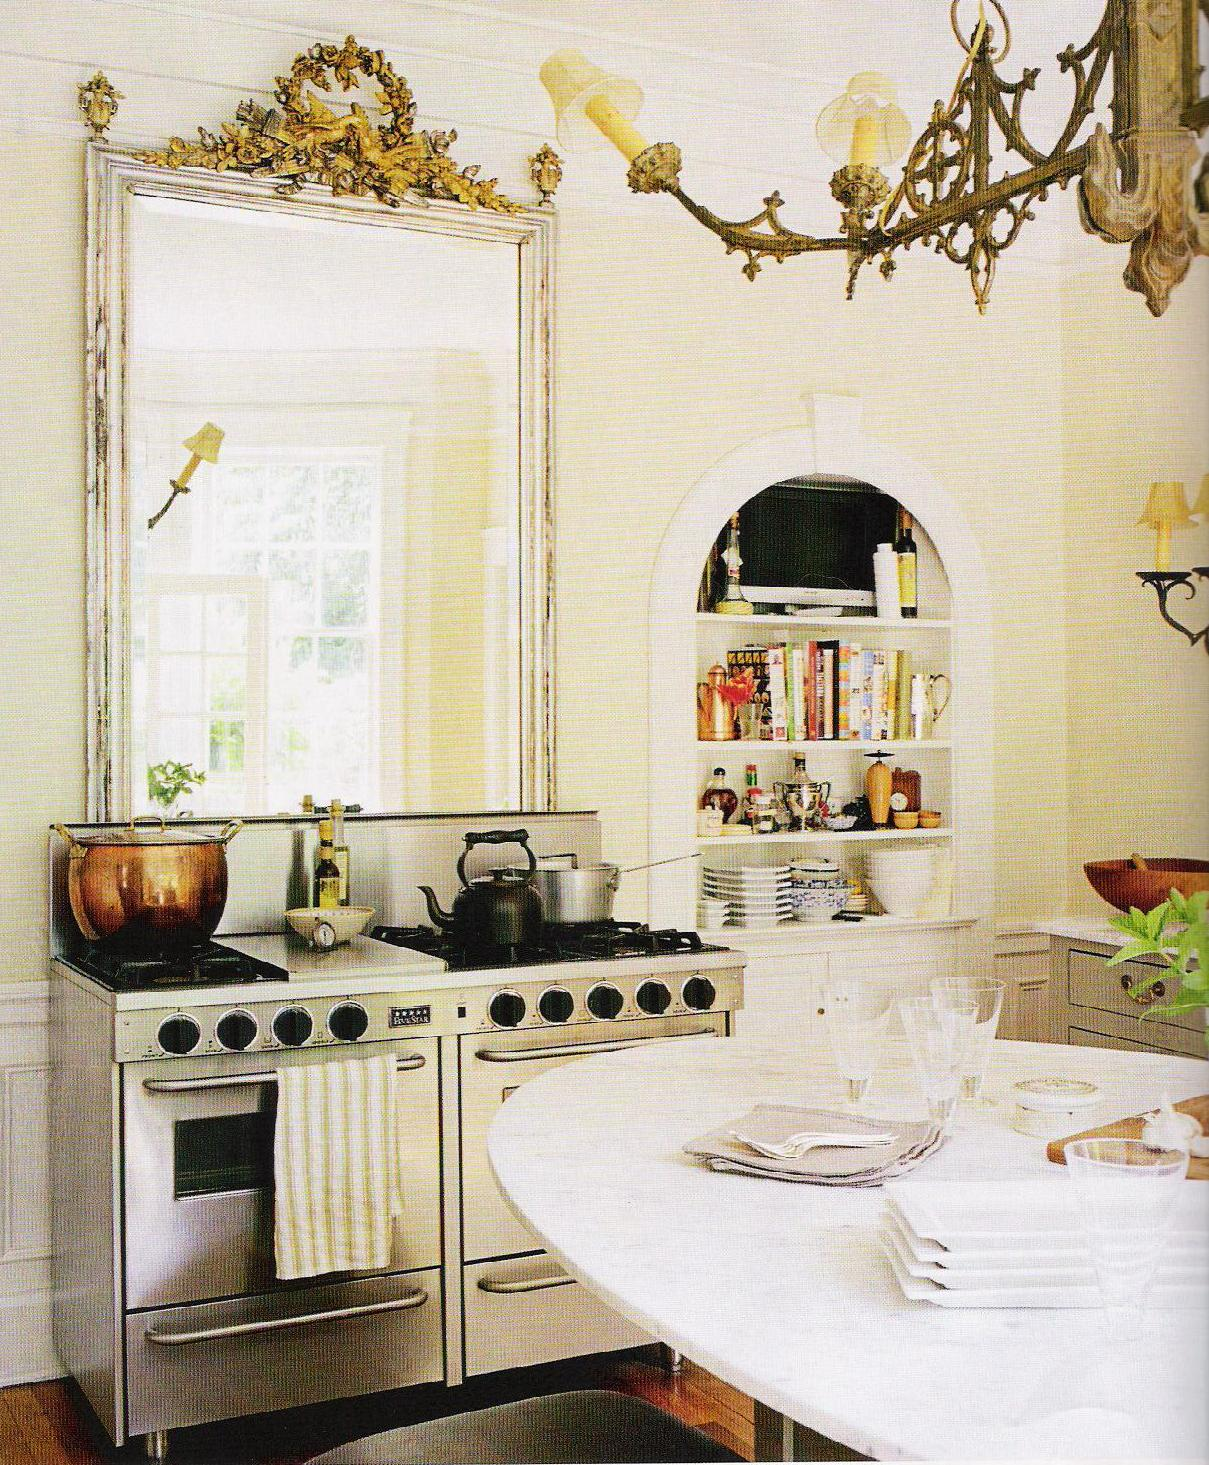 One Room Kitchen Interior Design In Mumbai: Decorology: Two Glamorous, Unique Spins On Classic Rooms